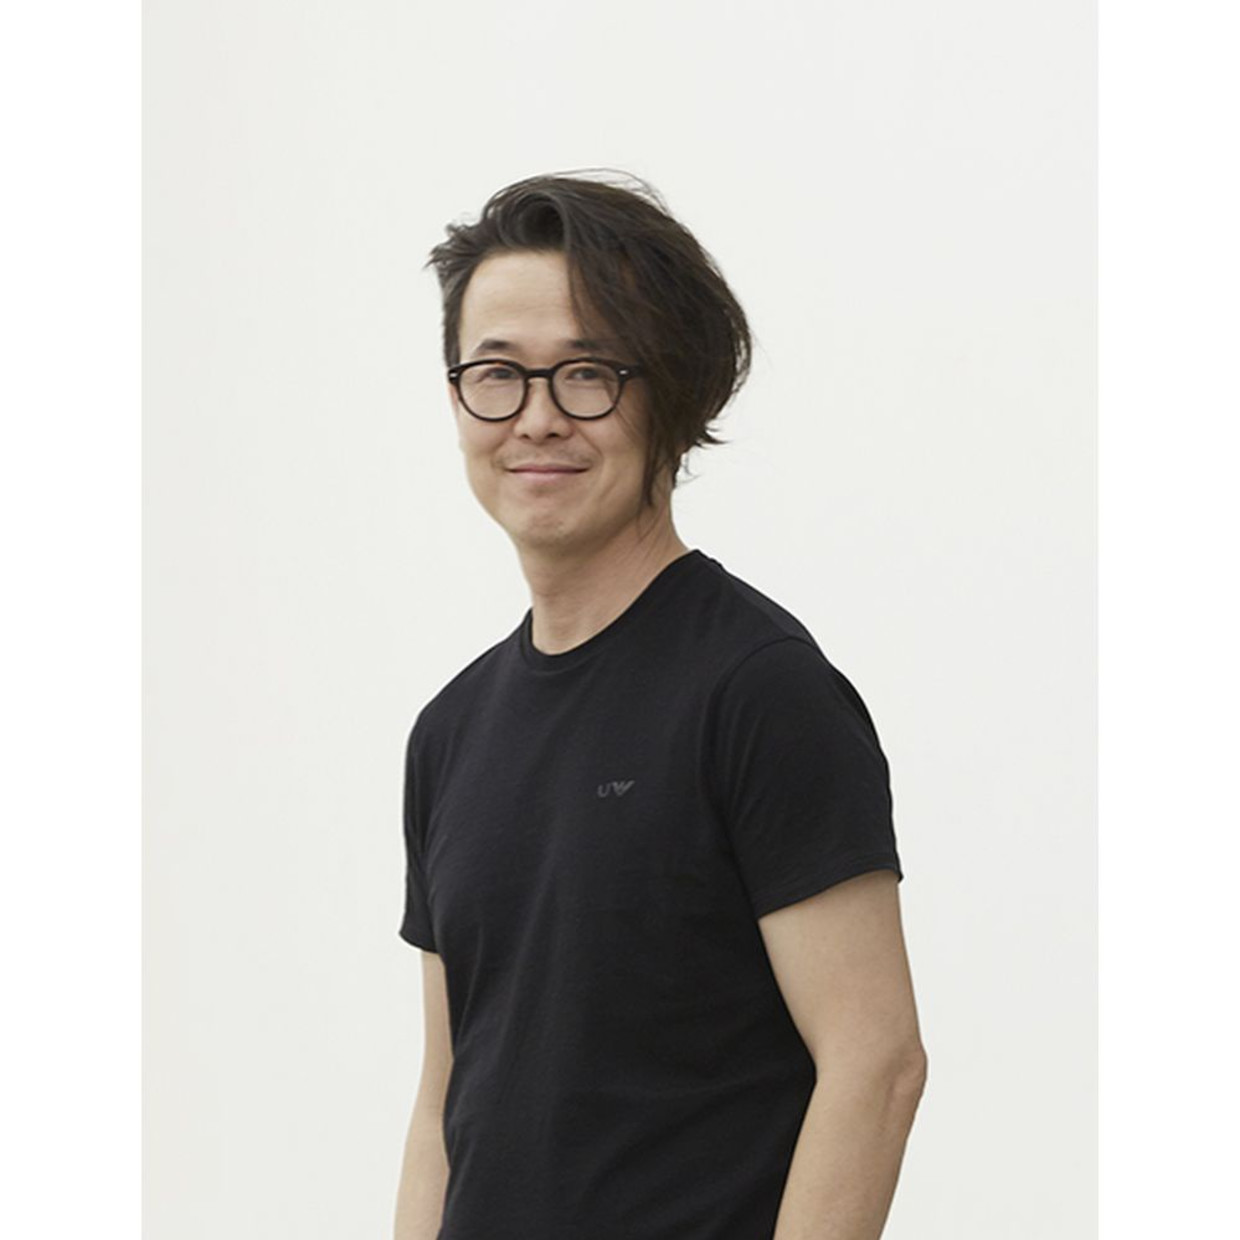 Liu Dawei Born in 1970, graduated from the Photography Department of the LuXun Academy of Fine Arts in 1993, Liu...